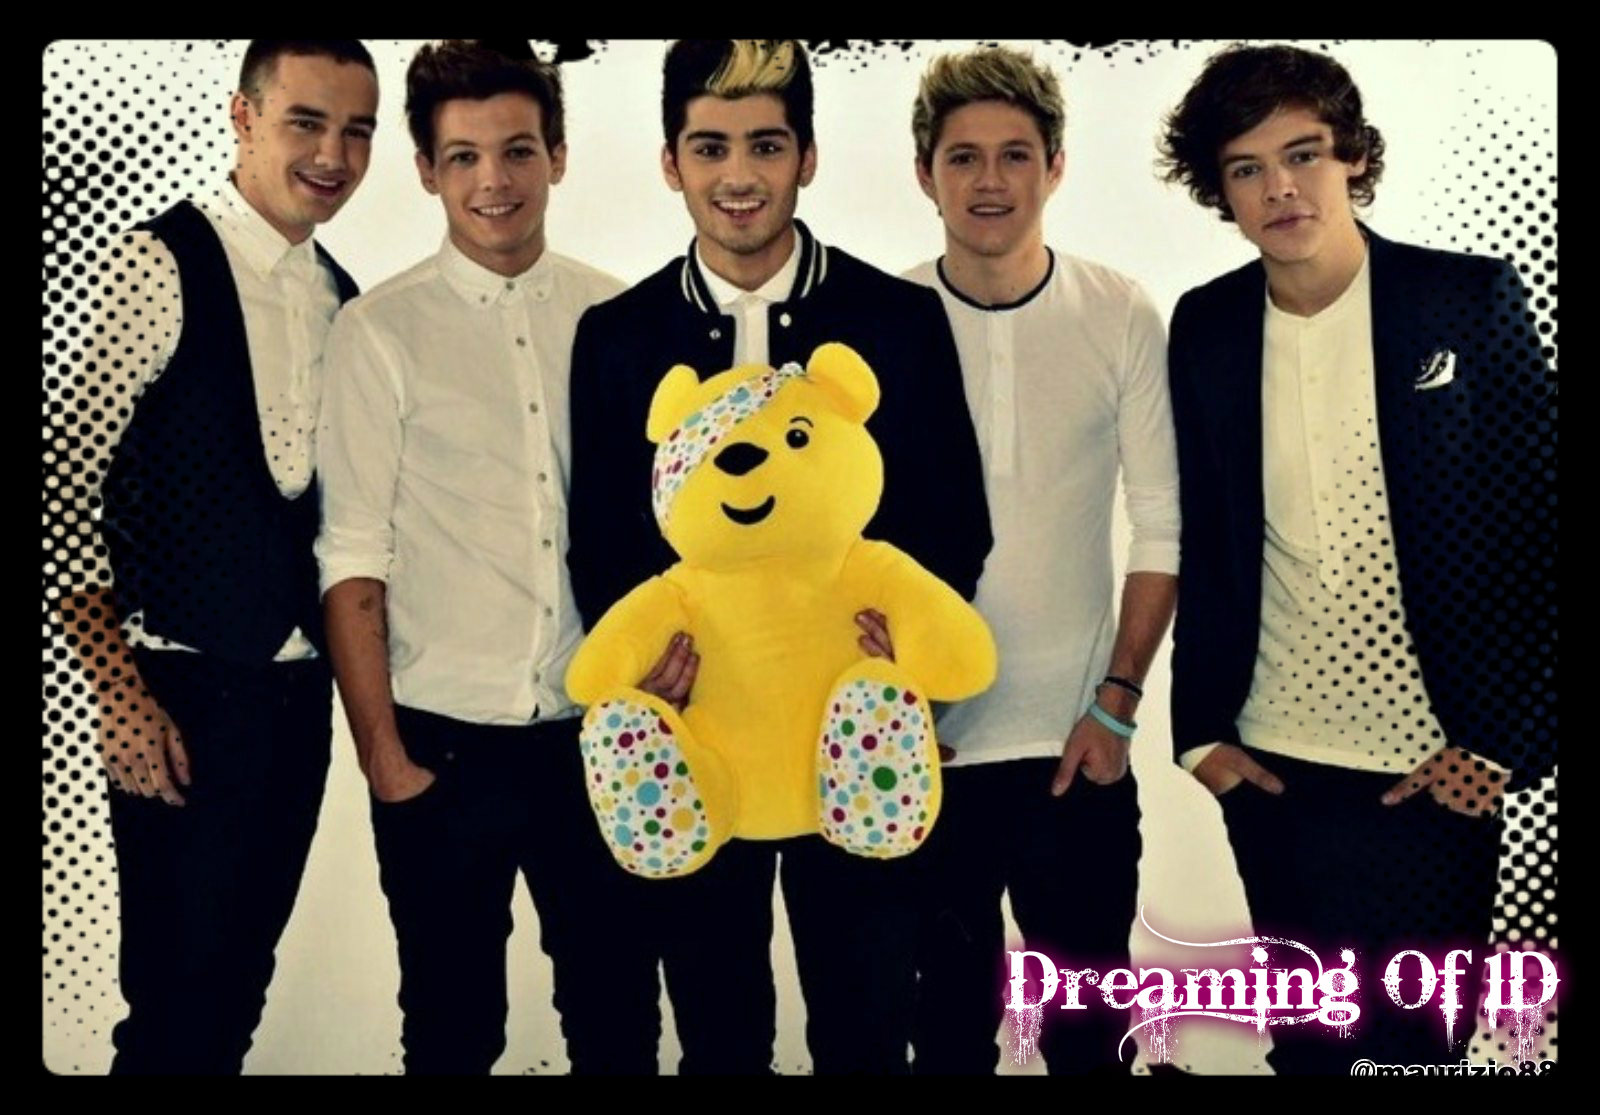 Dreaming of 1D